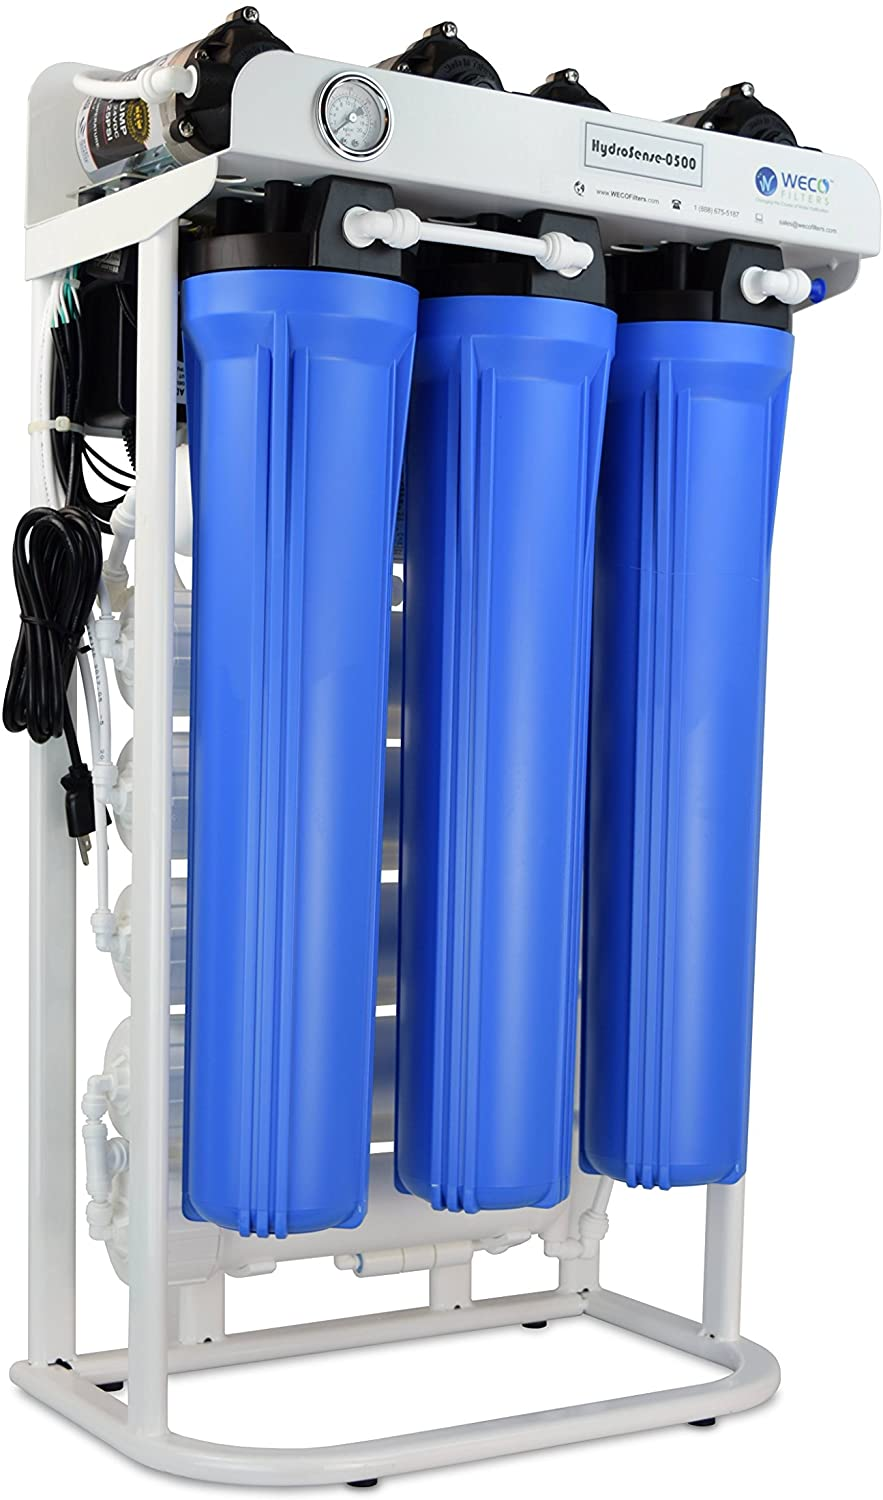 WECO HydroSense Light Commercial Reverse Osmosis Water Filter System (HydroSense-0500)